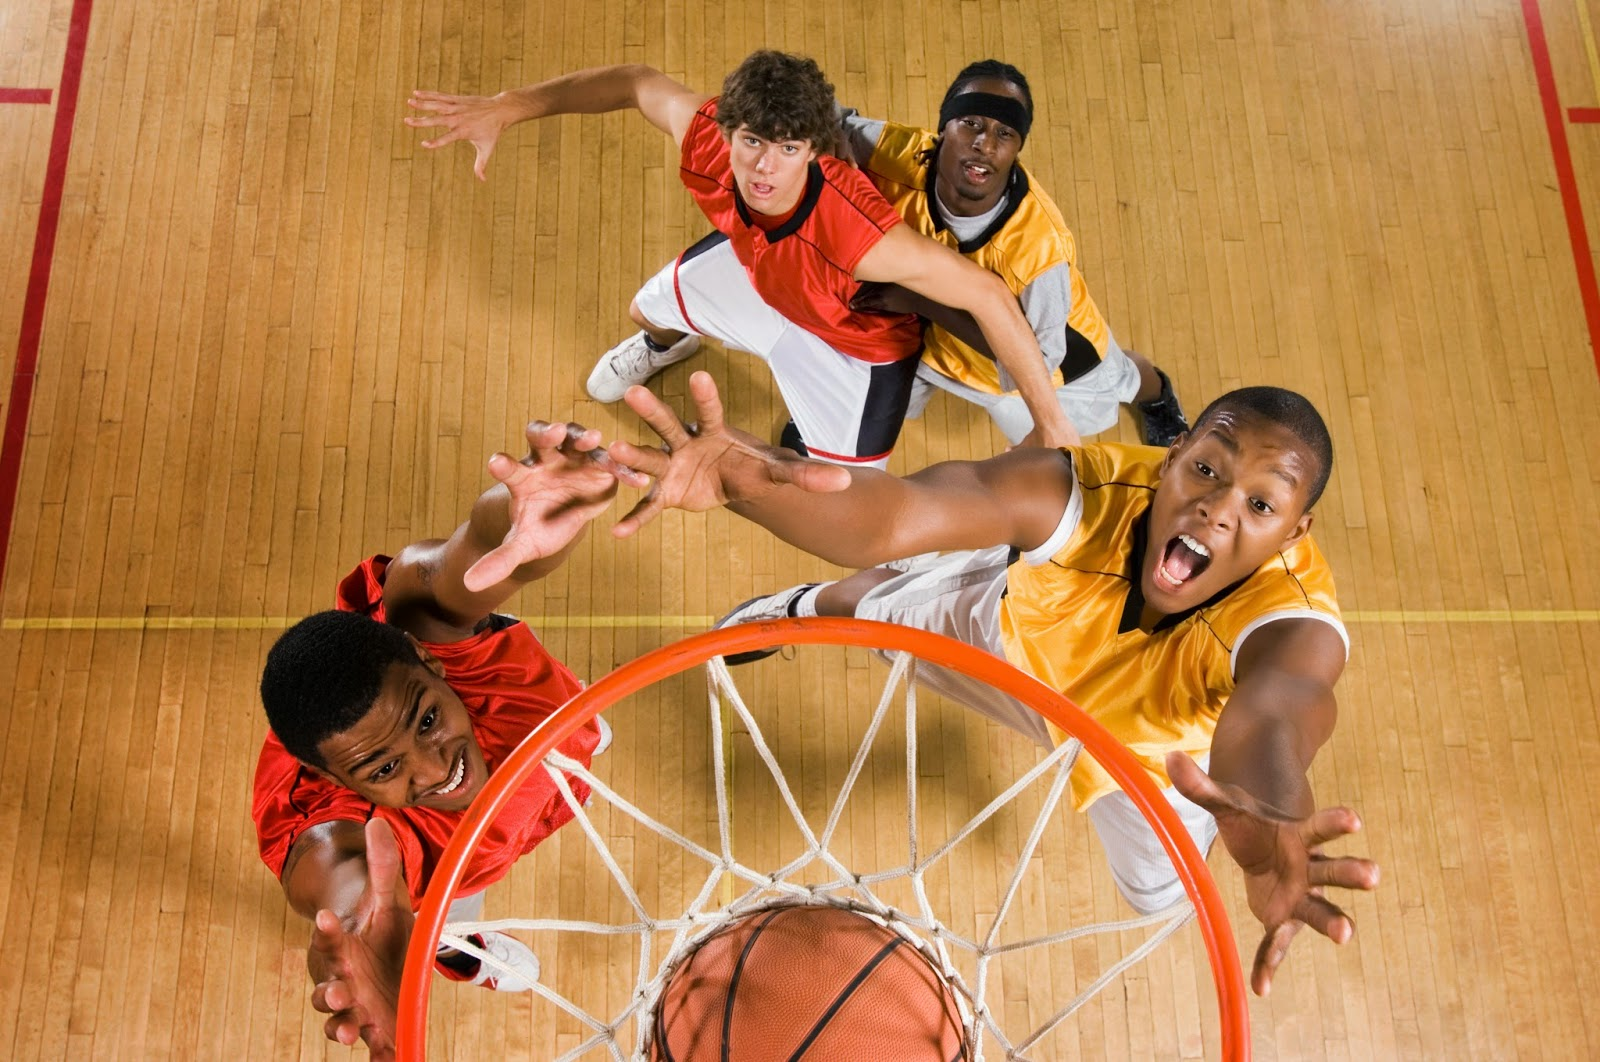 basketball players clamoring over ball near net